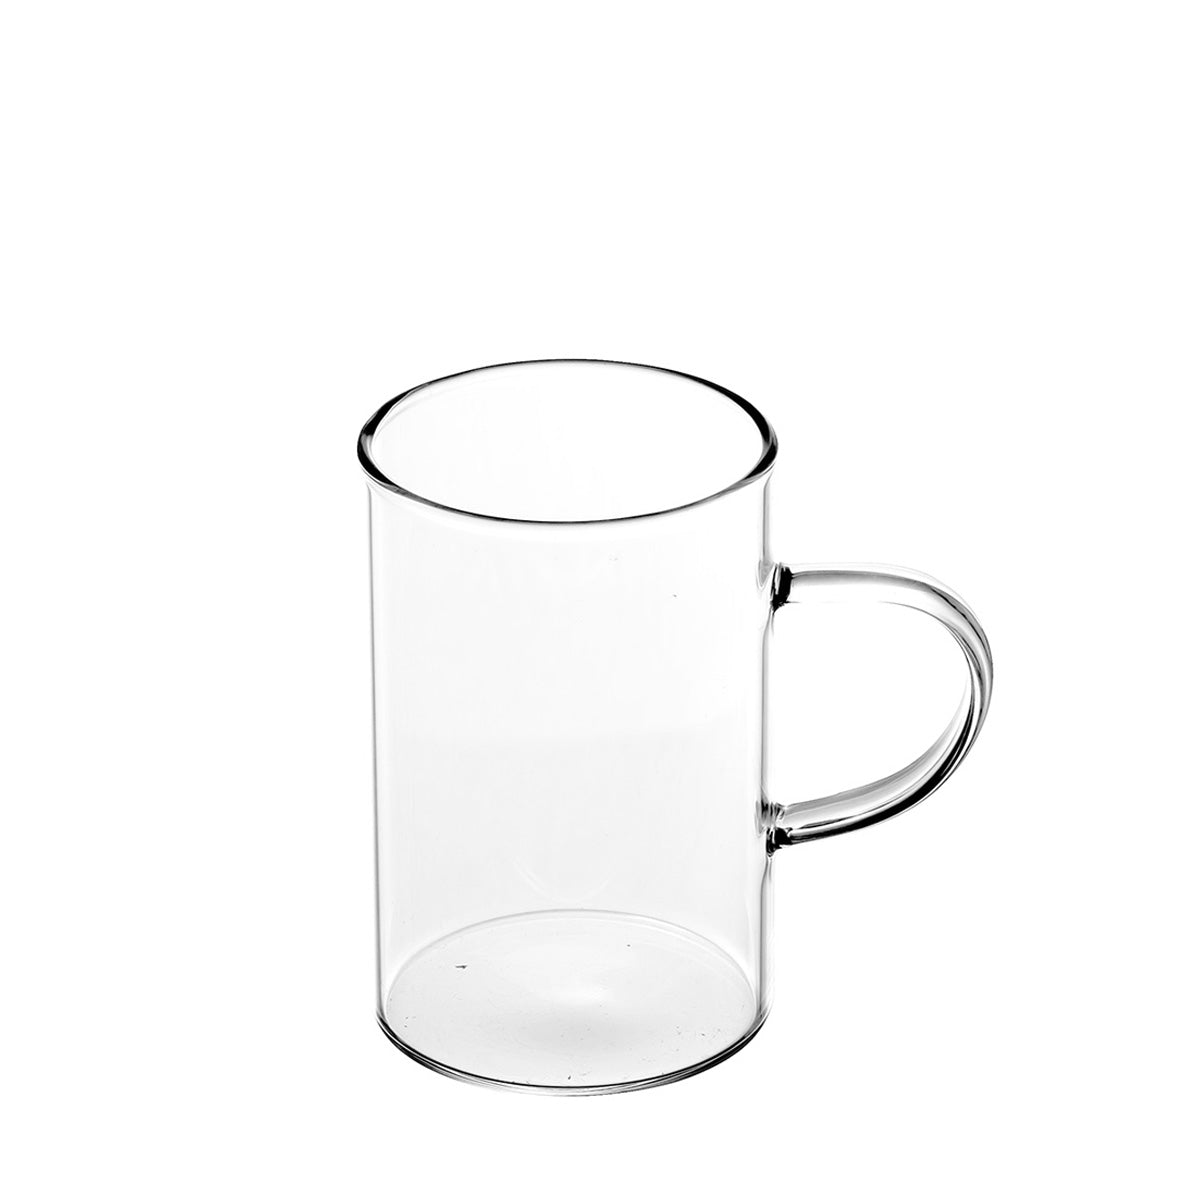 Cuba Borosilicate Glass Mugs 300ml -  Set Of 6 Pcs By Wonderchef